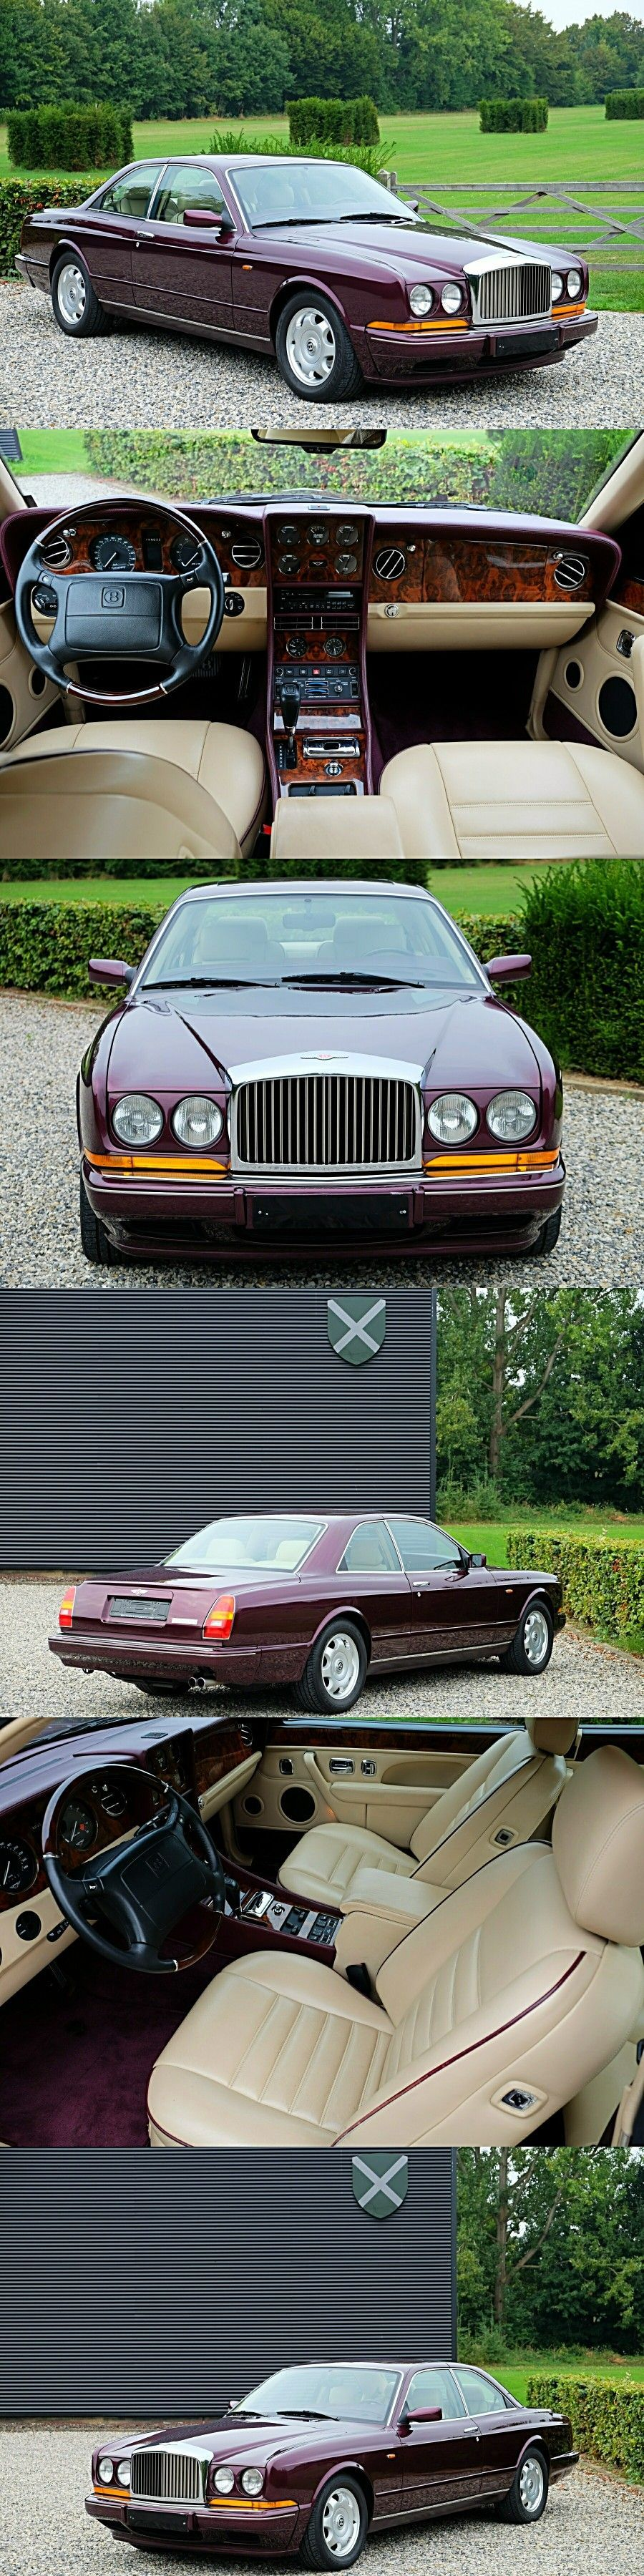 1992 Bentley Continental R rollsroycevintagecars cars